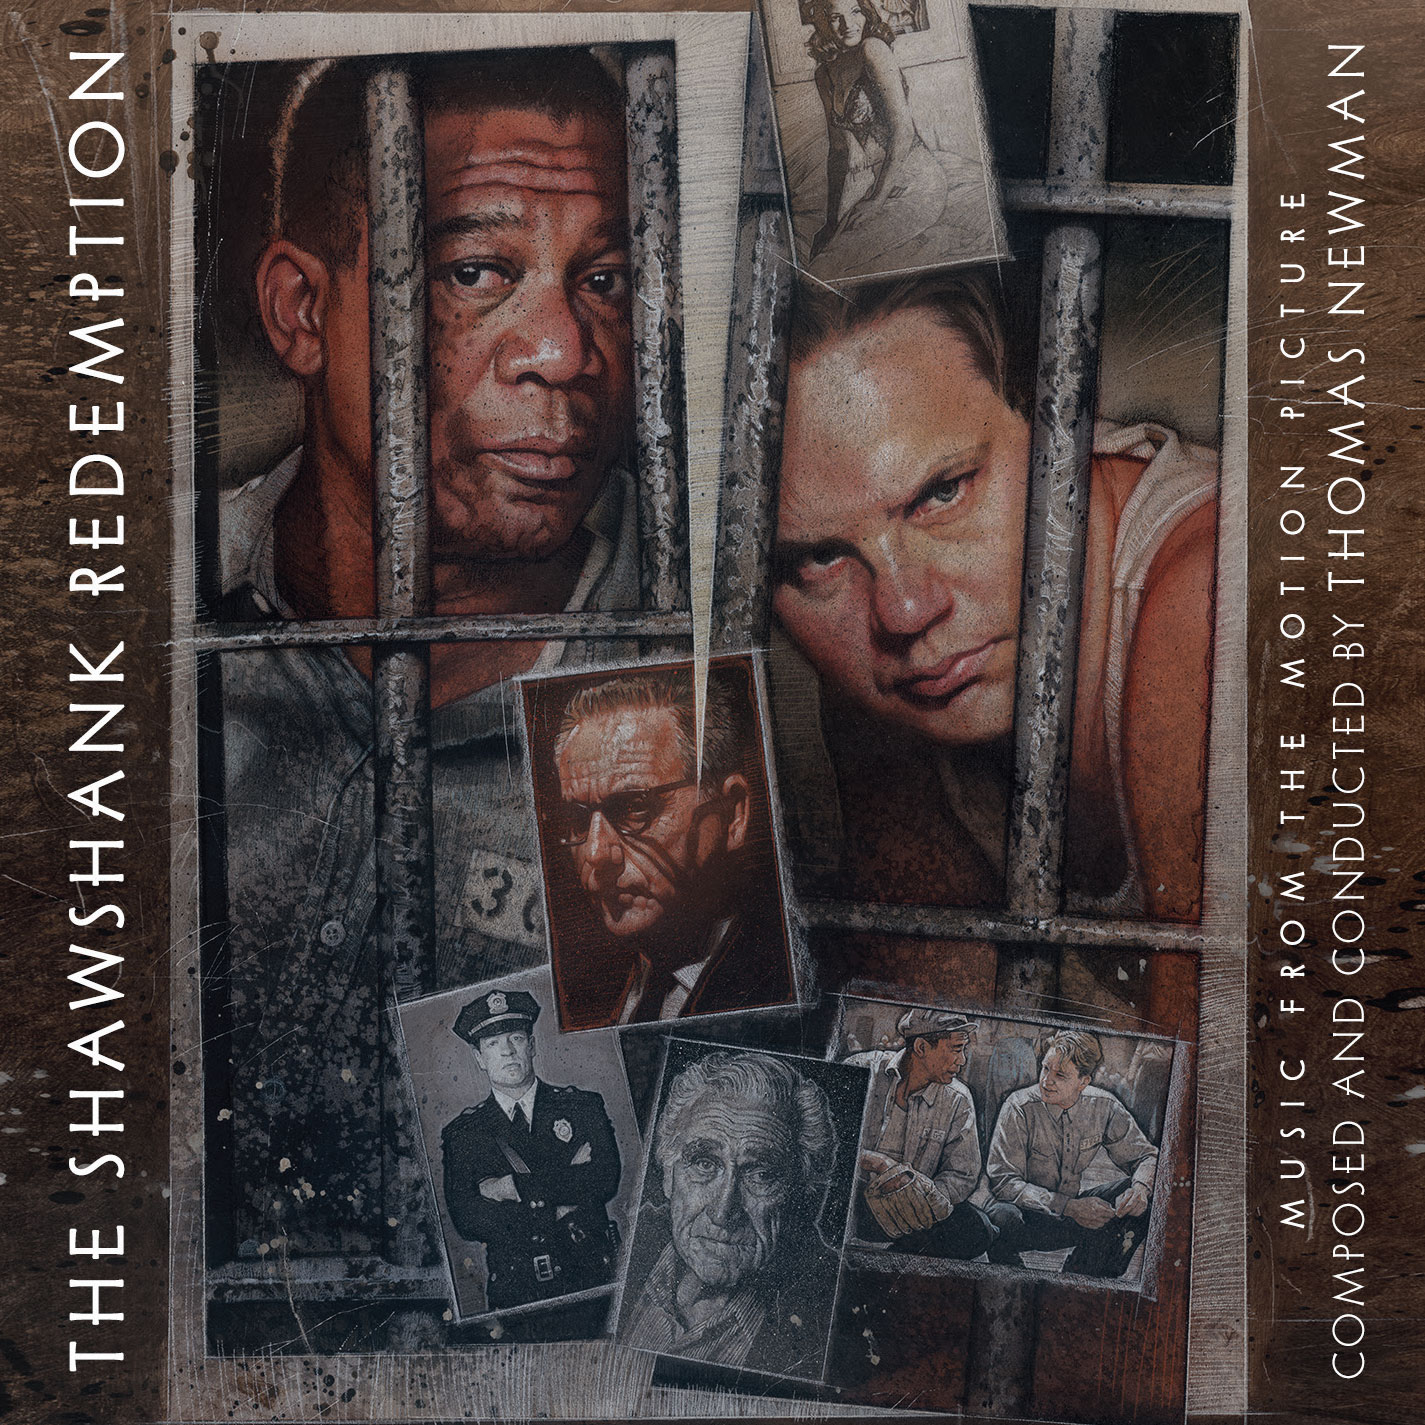 The Shawshank Redemption (2CD), Detalles